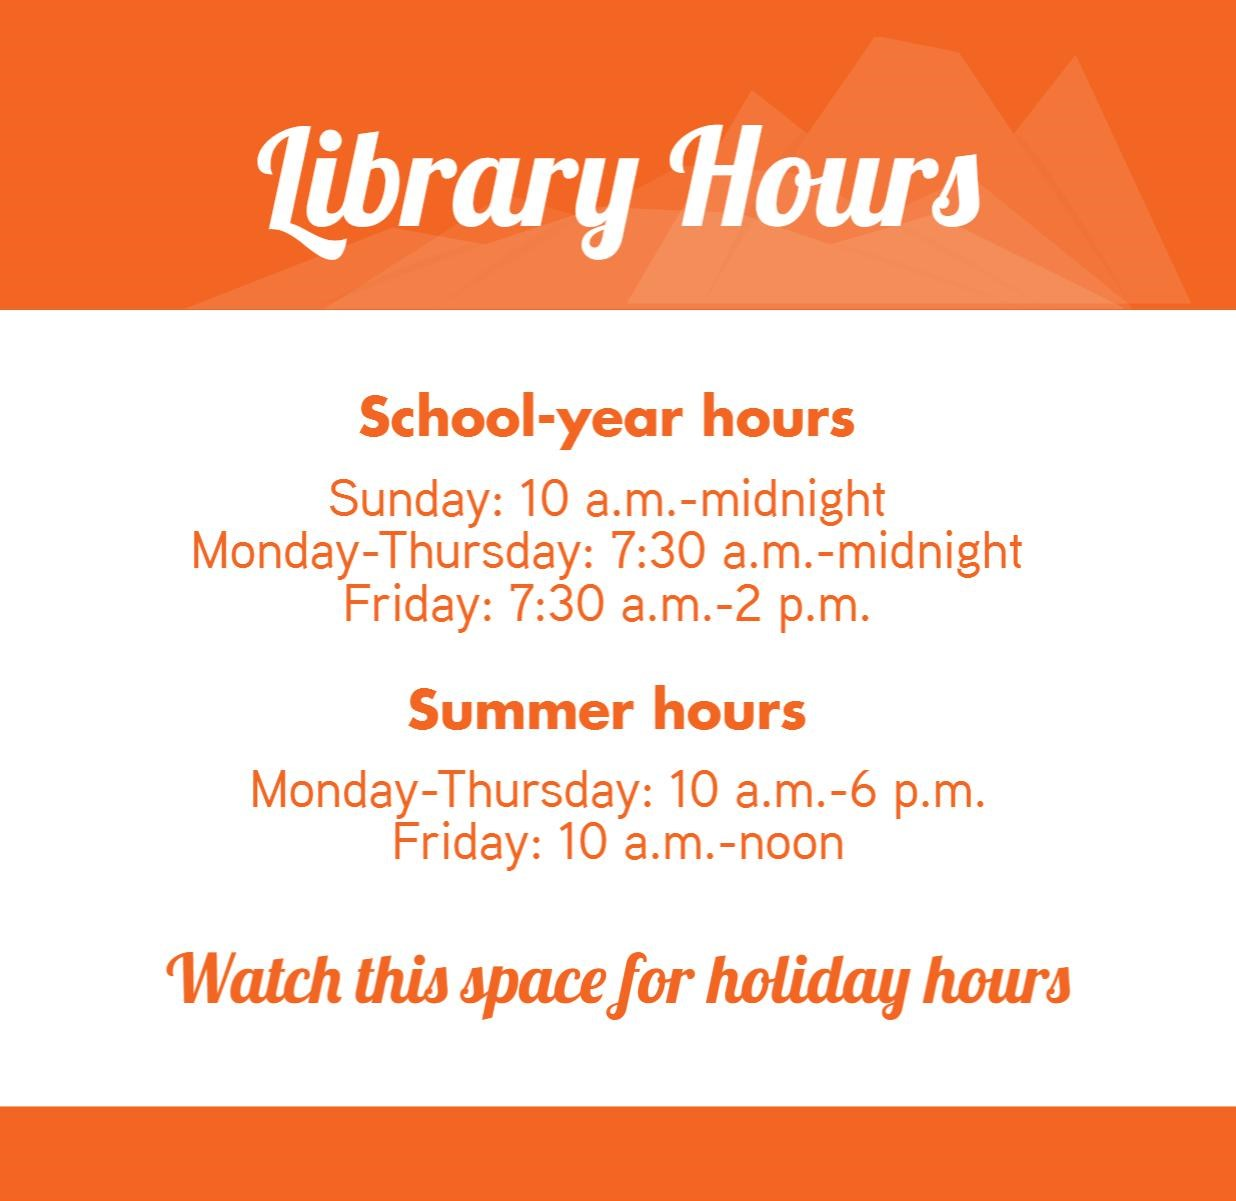 library-hours-m 22778911 3c19114e9ee3be4fedc337c08417b04d72ec7c17